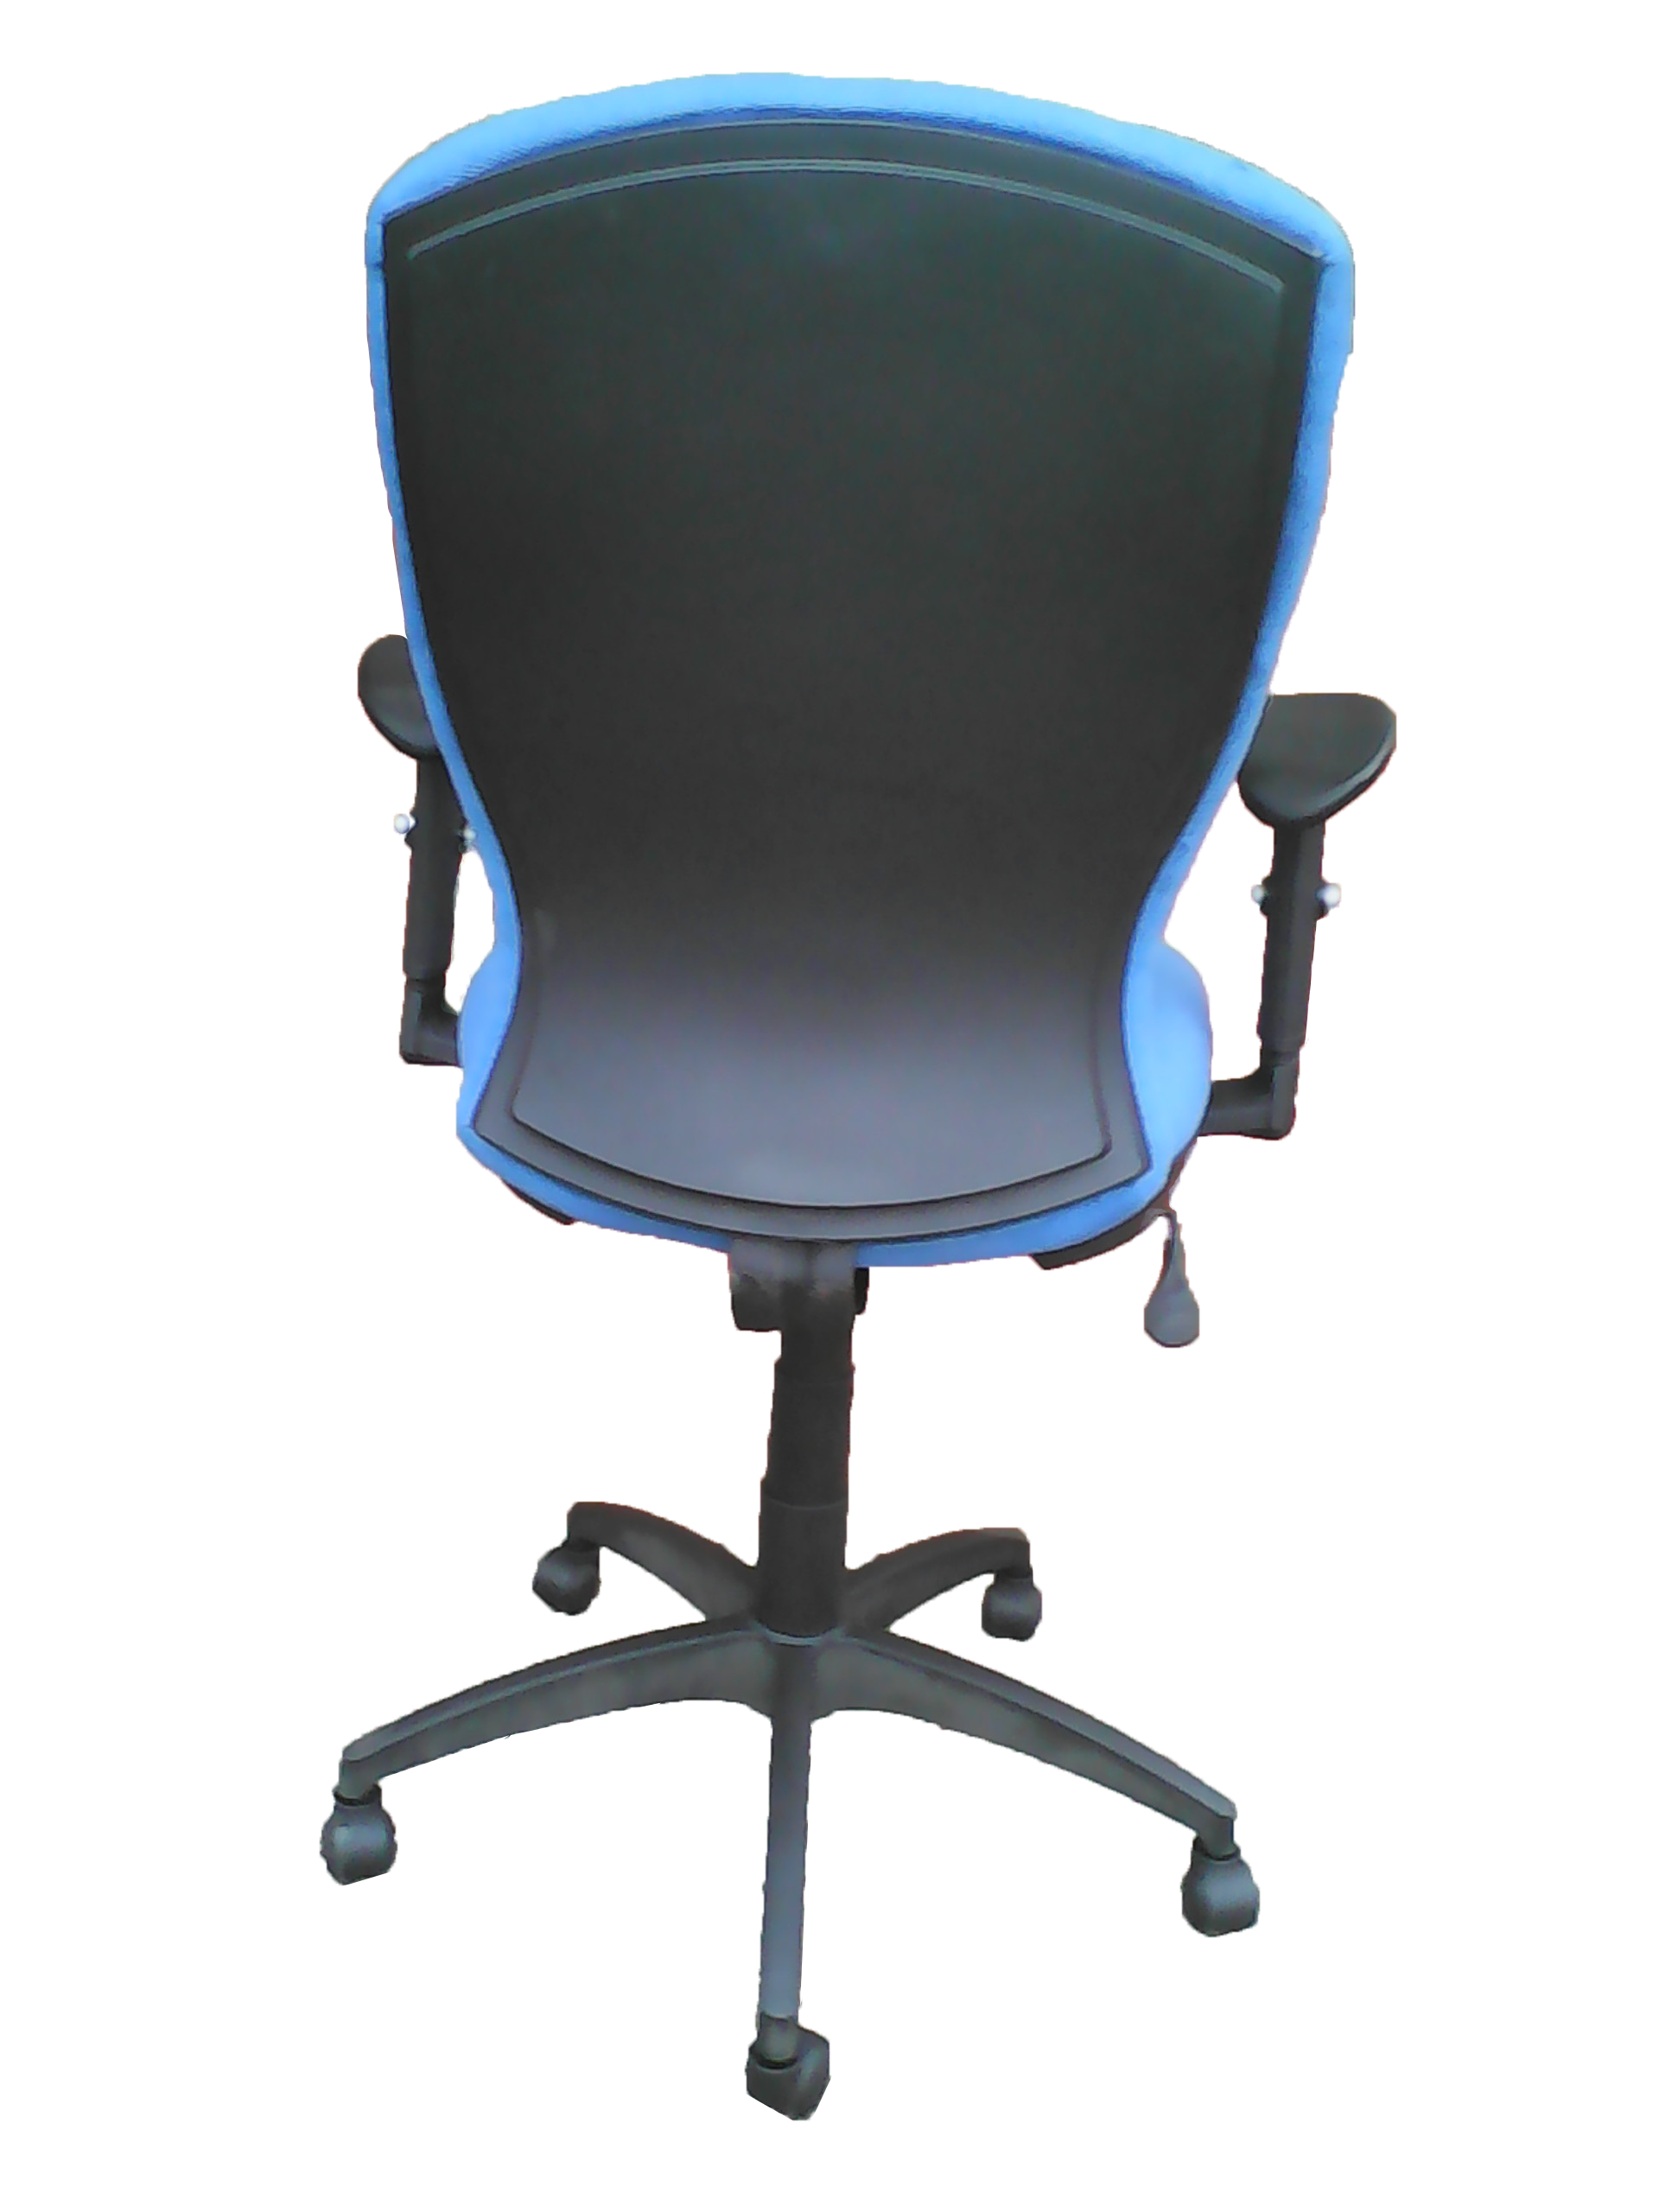 a10021h-BLUE-computer-office-chair-BACK